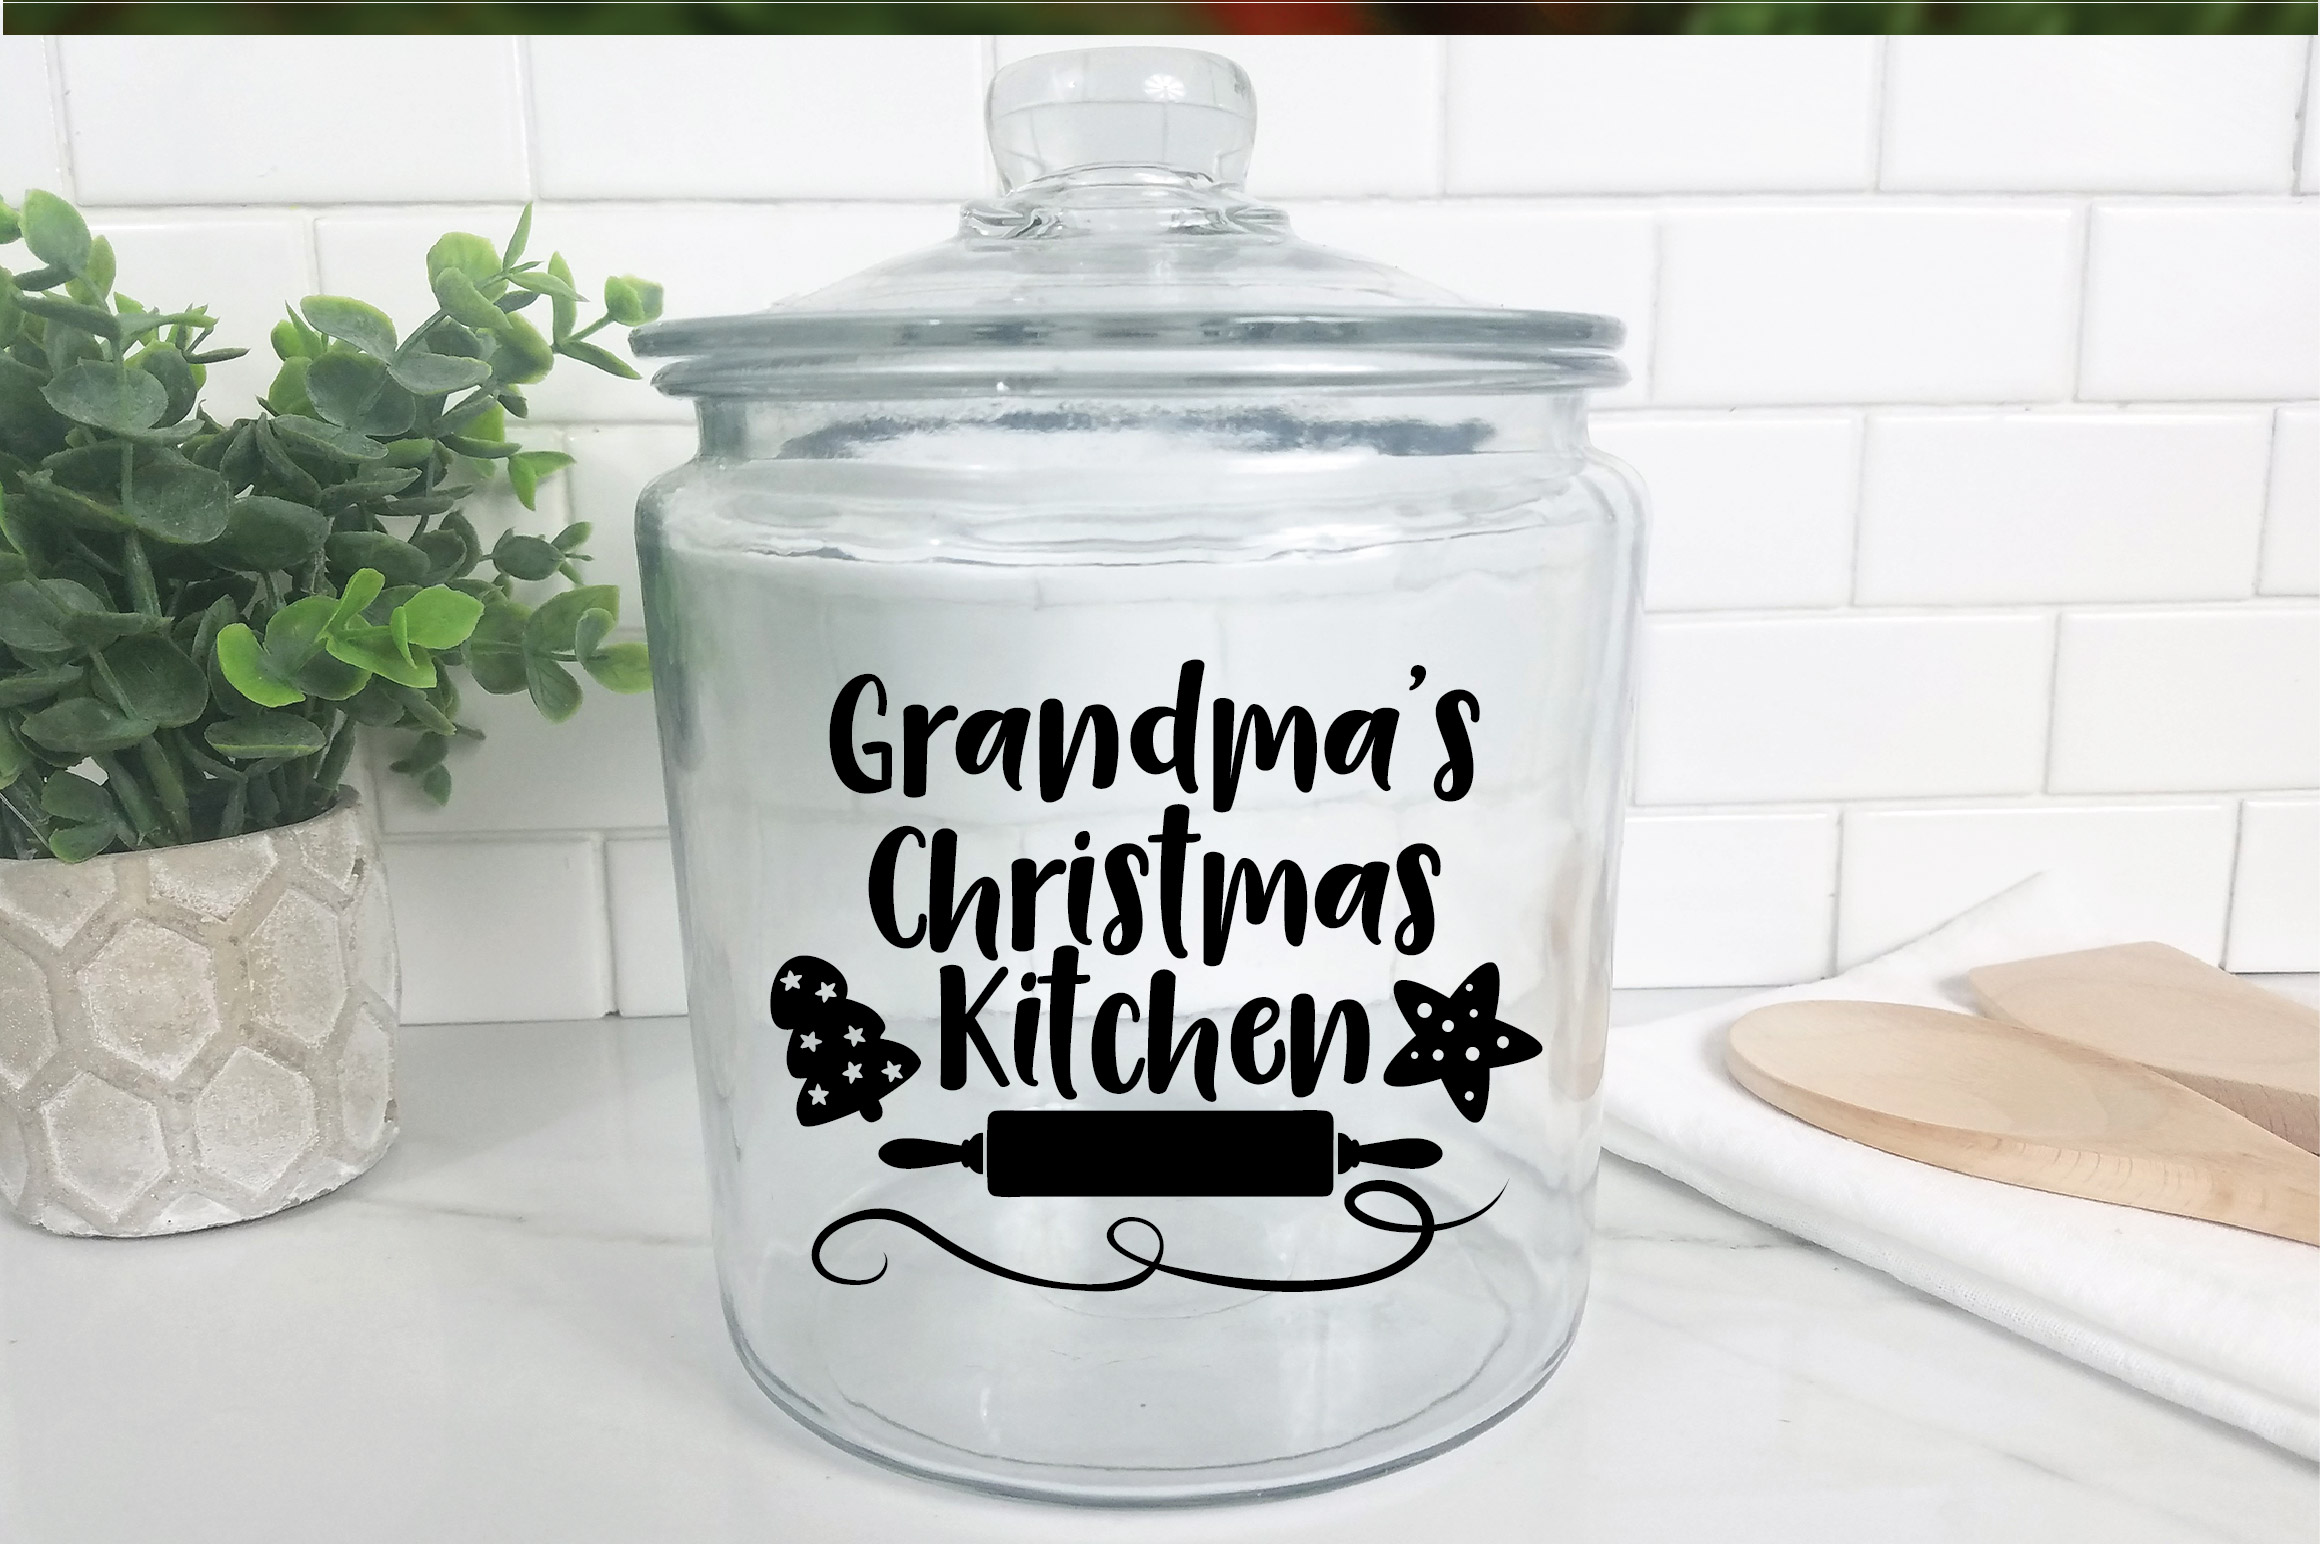 Christmas SVG Cut File - Grandma's Kitchen SVG DXF PNG EPS example image 9